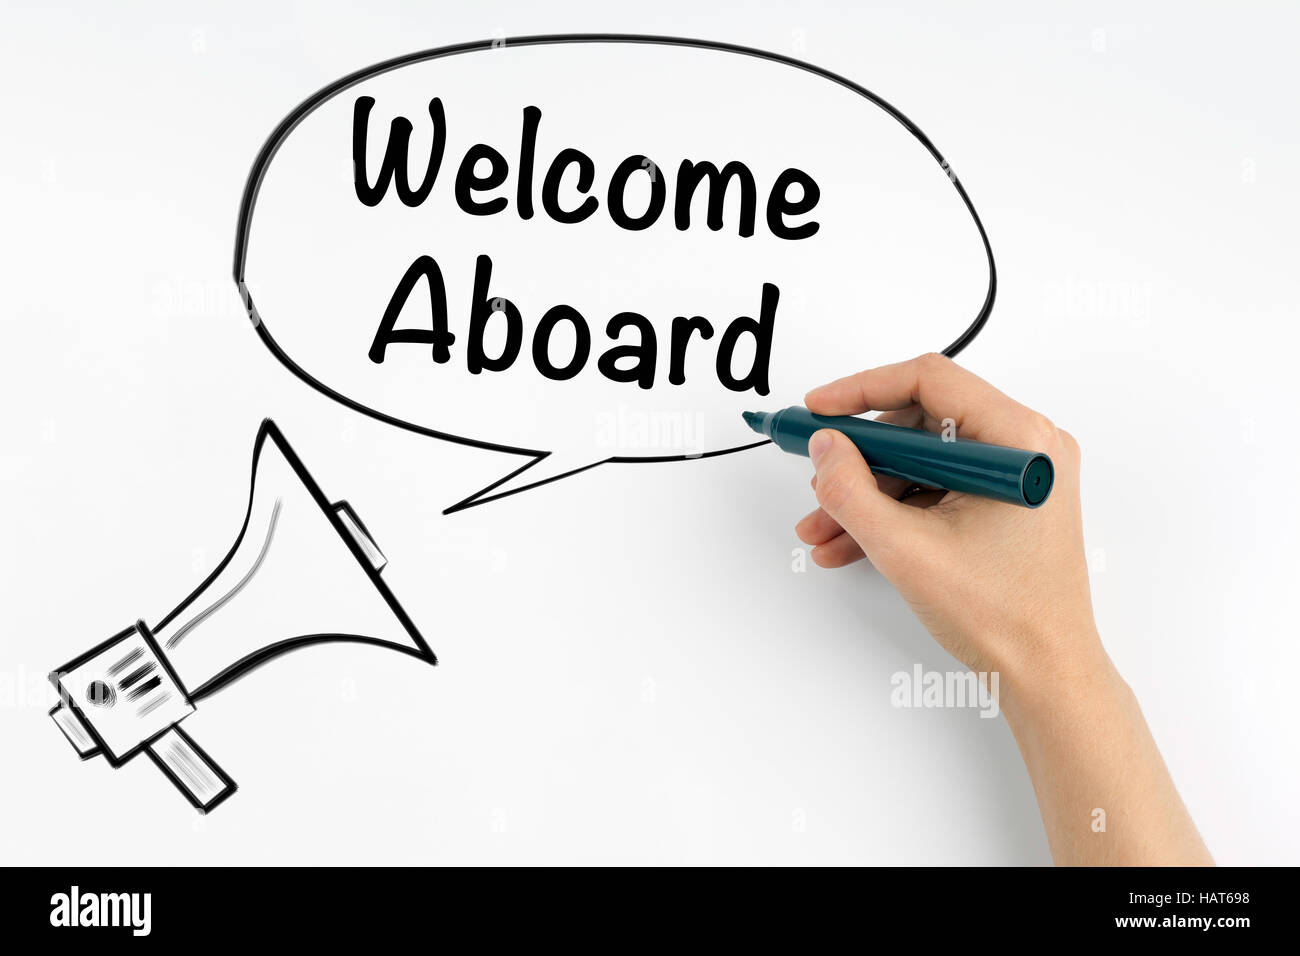 Welcome aboard. Megaphone and text on a white background - Stock Image